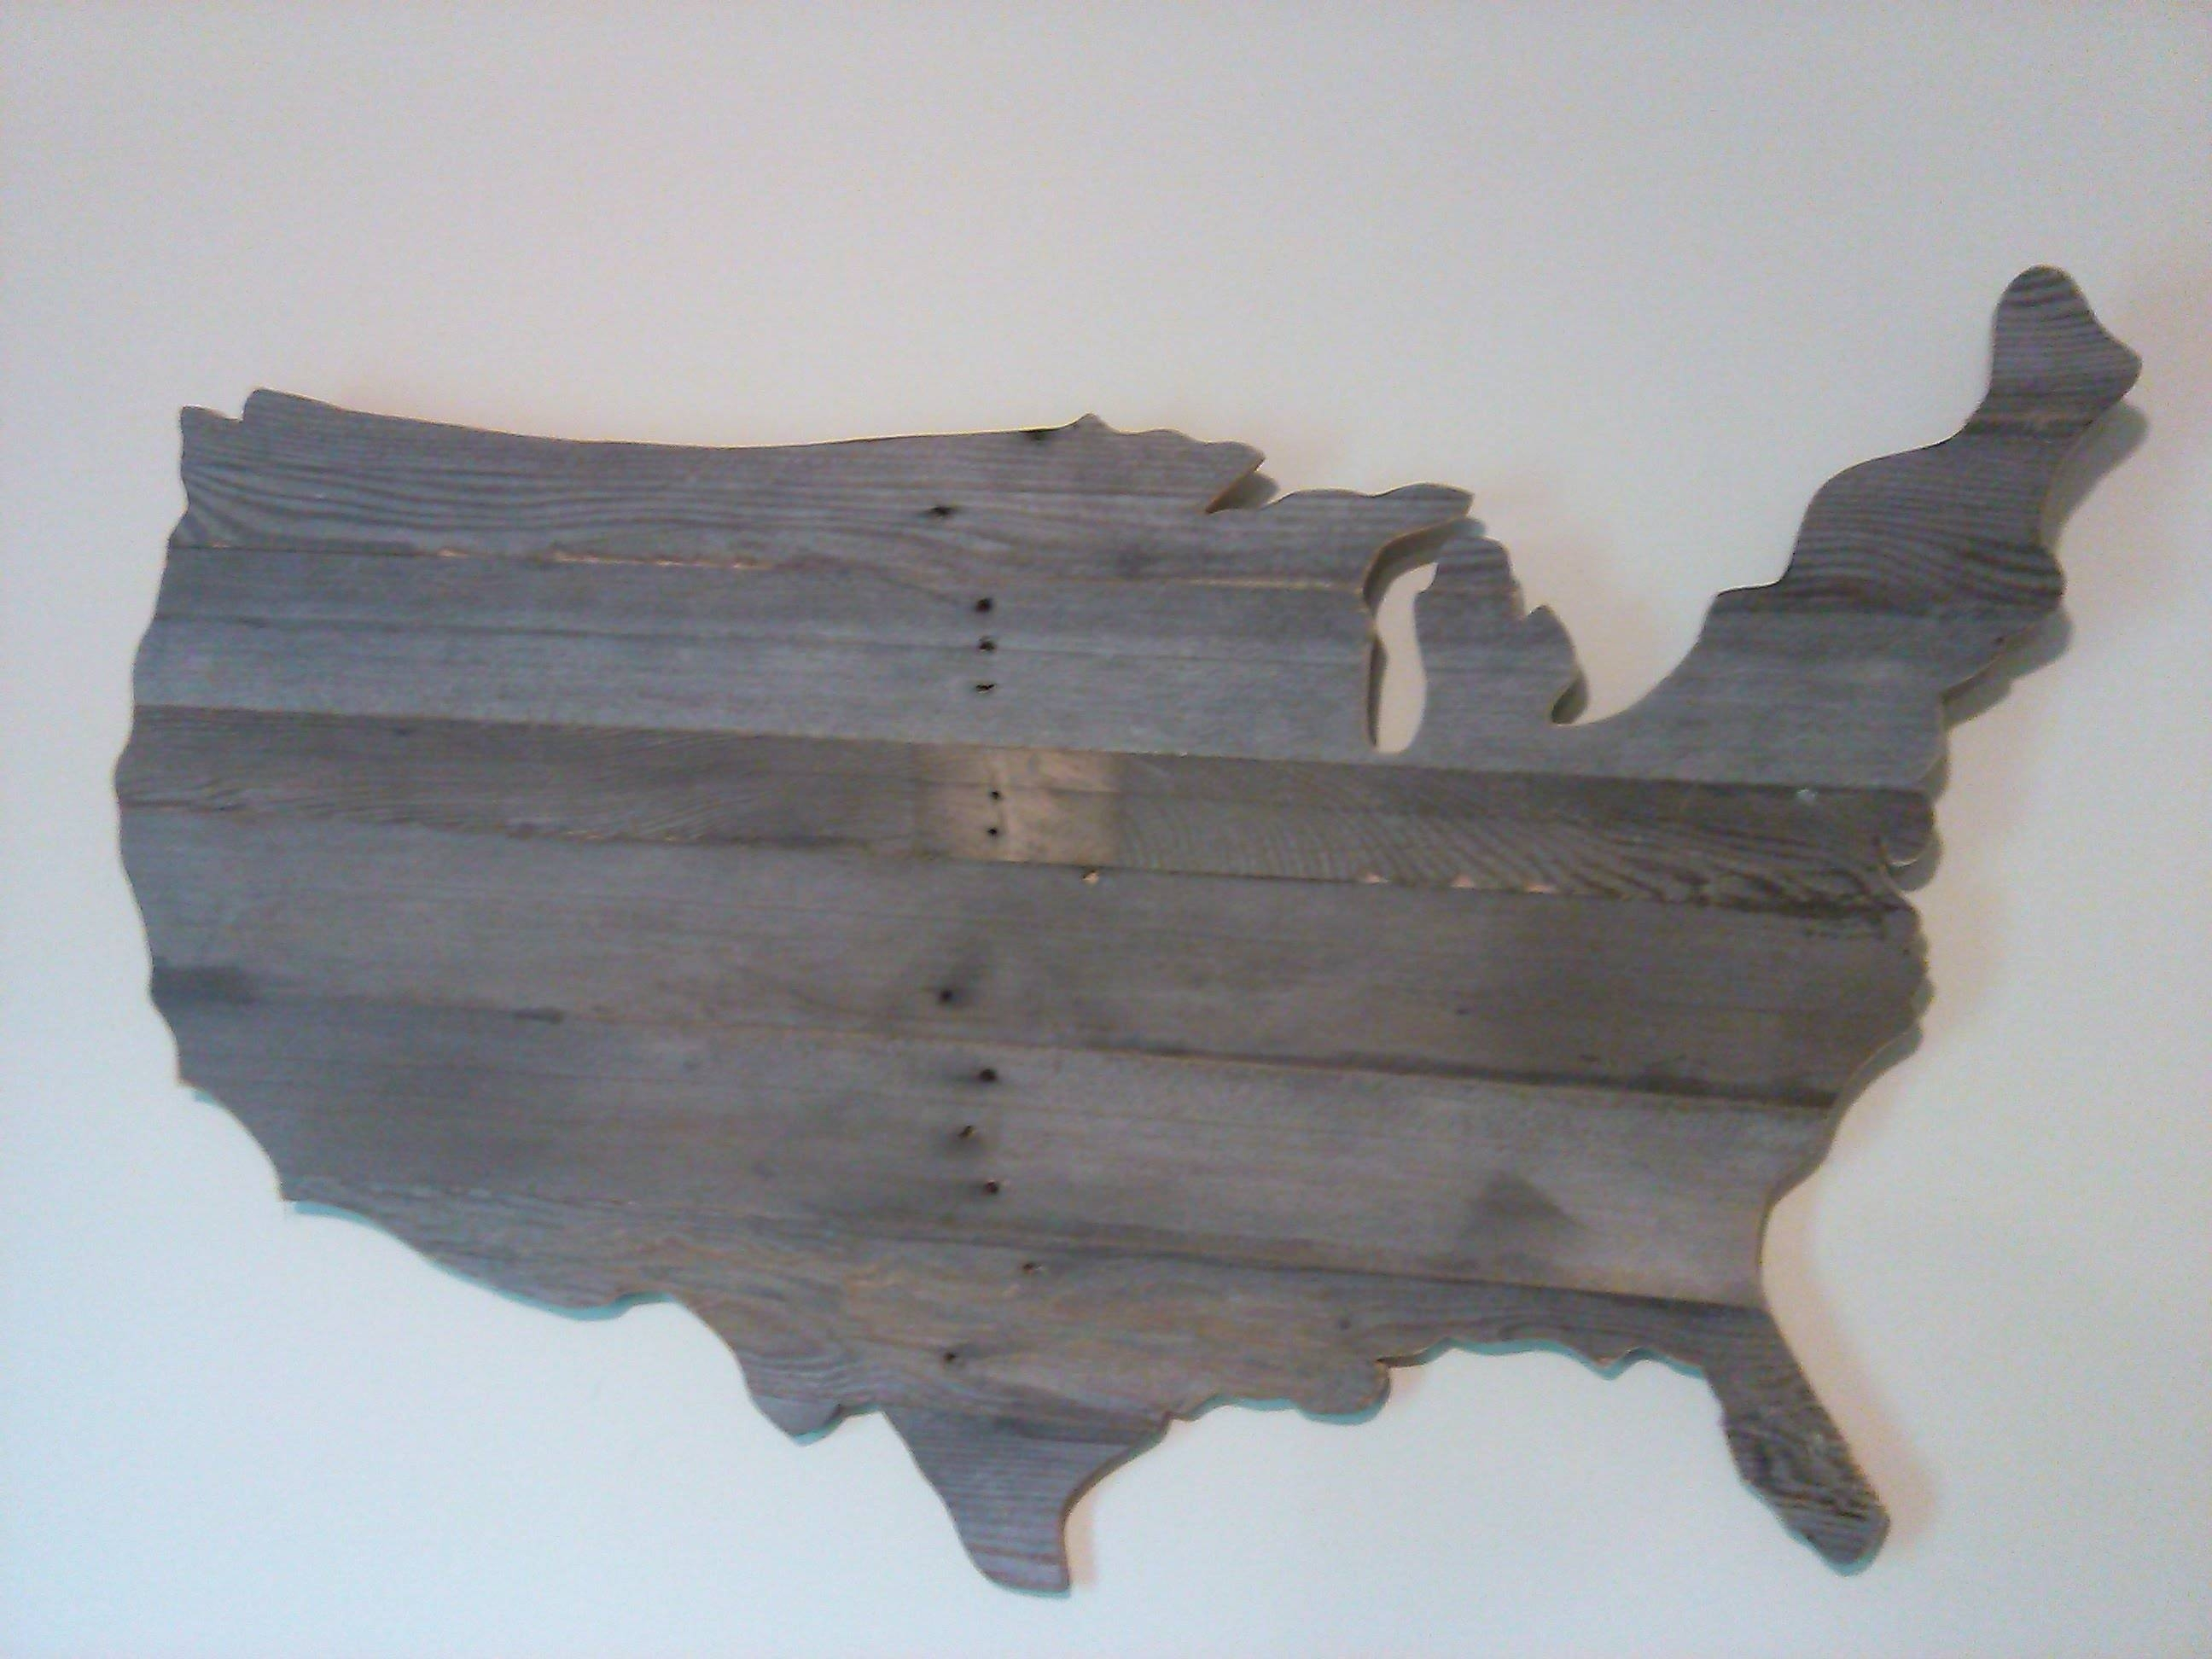 How To Make A Wooden Usa Map Wall Art Out Of Pallets – Youtube In Newest Wood Map Wall Art (View 11 of 20)